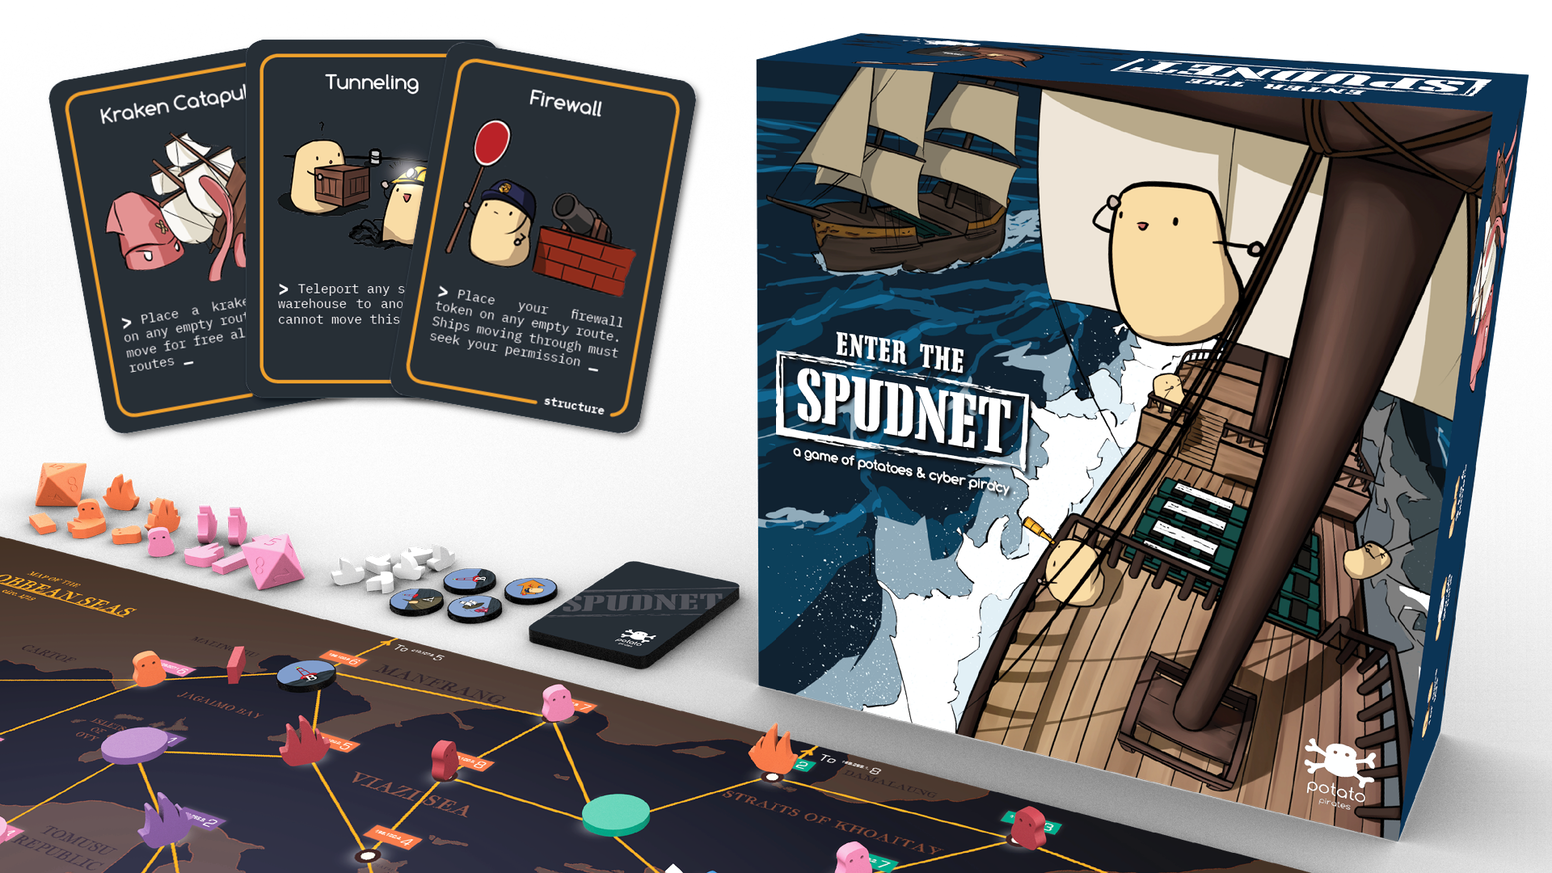 A standalone board game on cybersecurity and computer networking